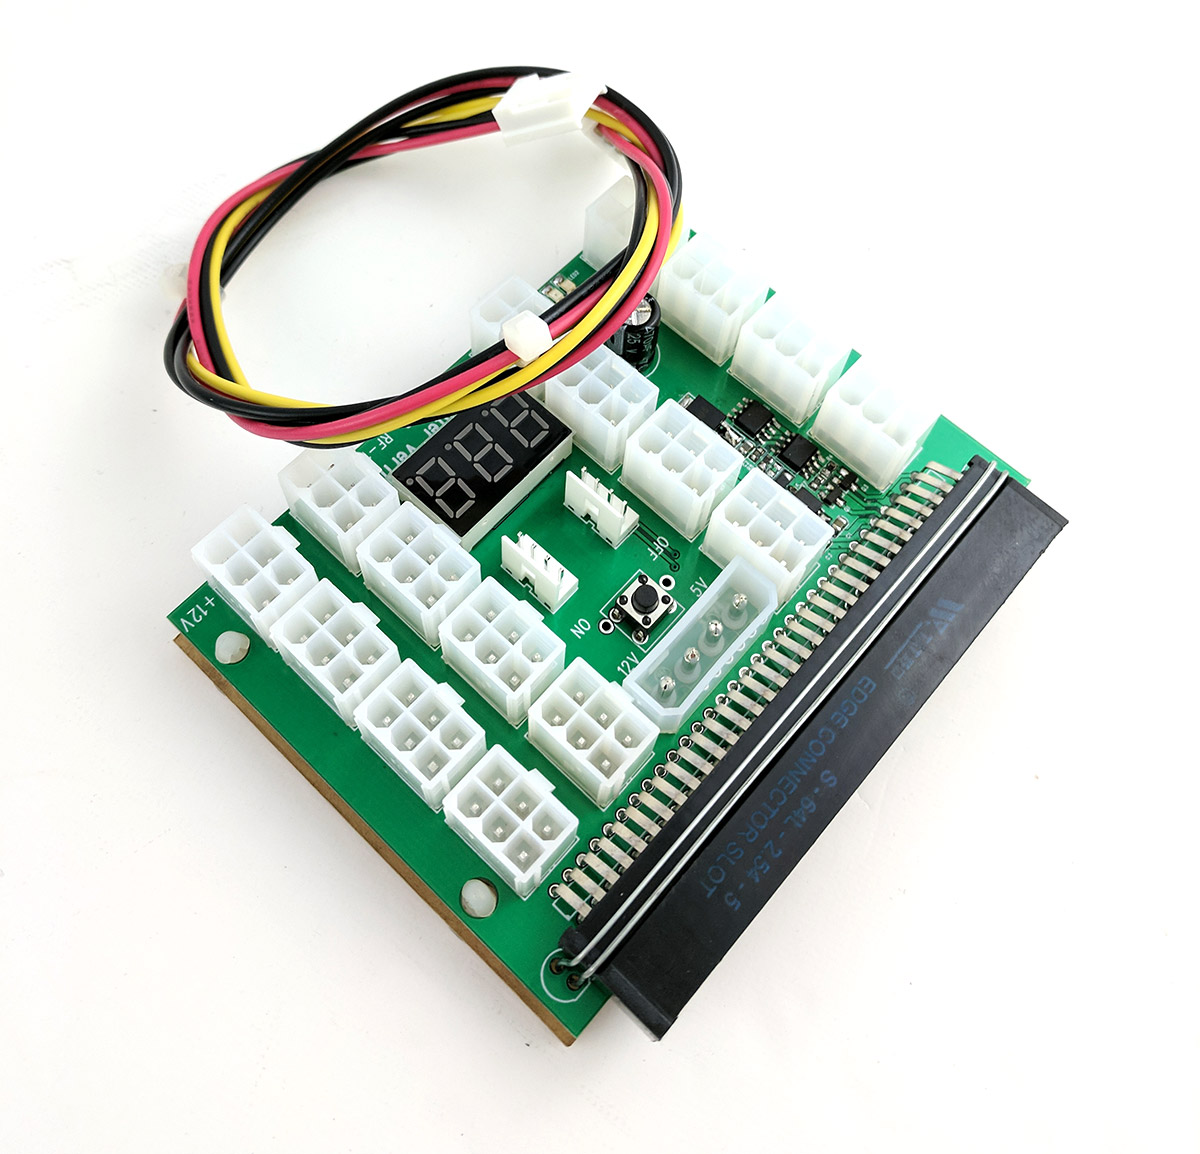 X11 breakout board with an interconnect sync cable